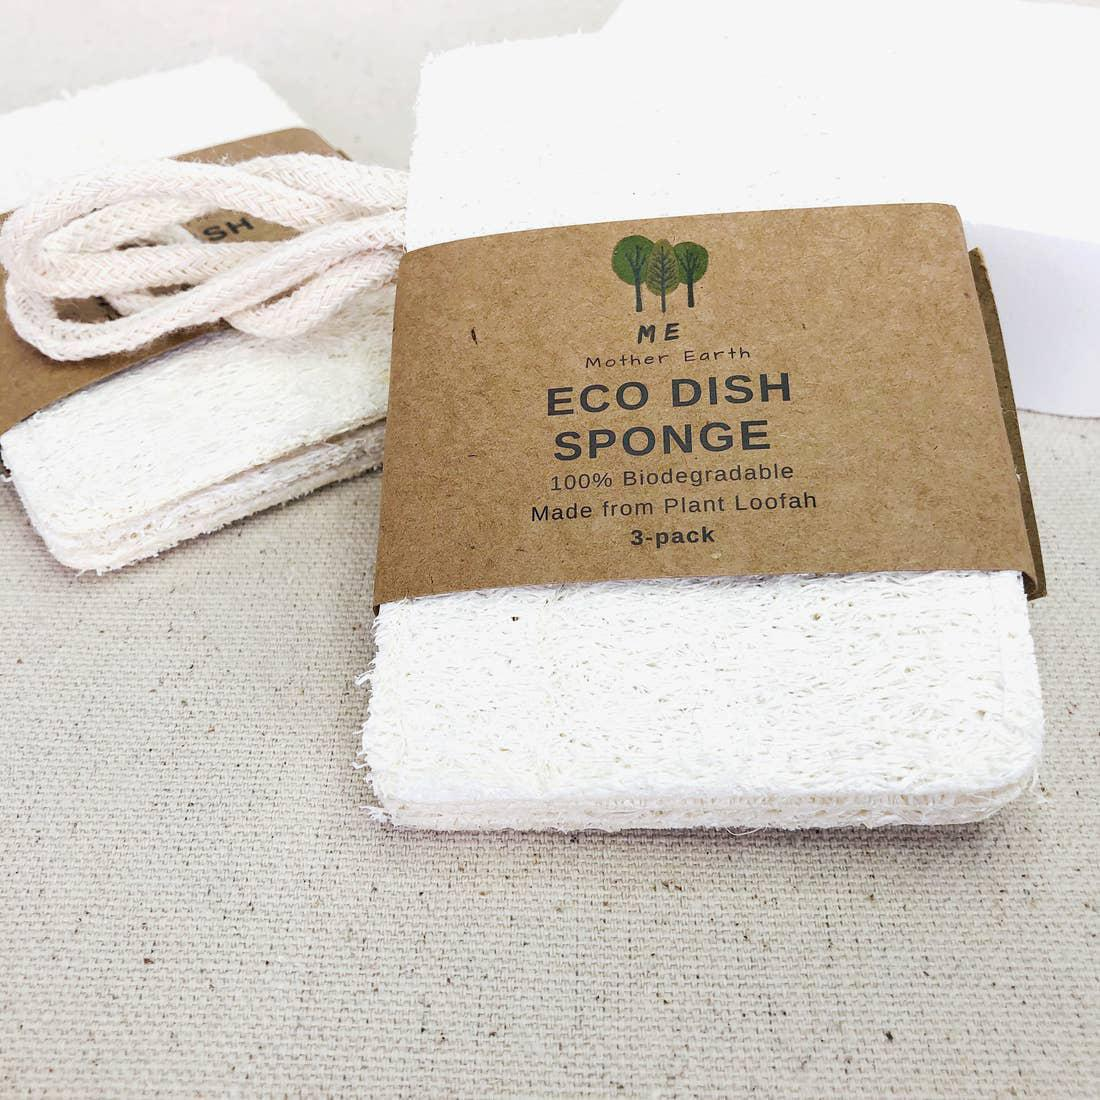 Loofah Dish Sponge: Double Layer with cotton loop 3-Pack - zero waste